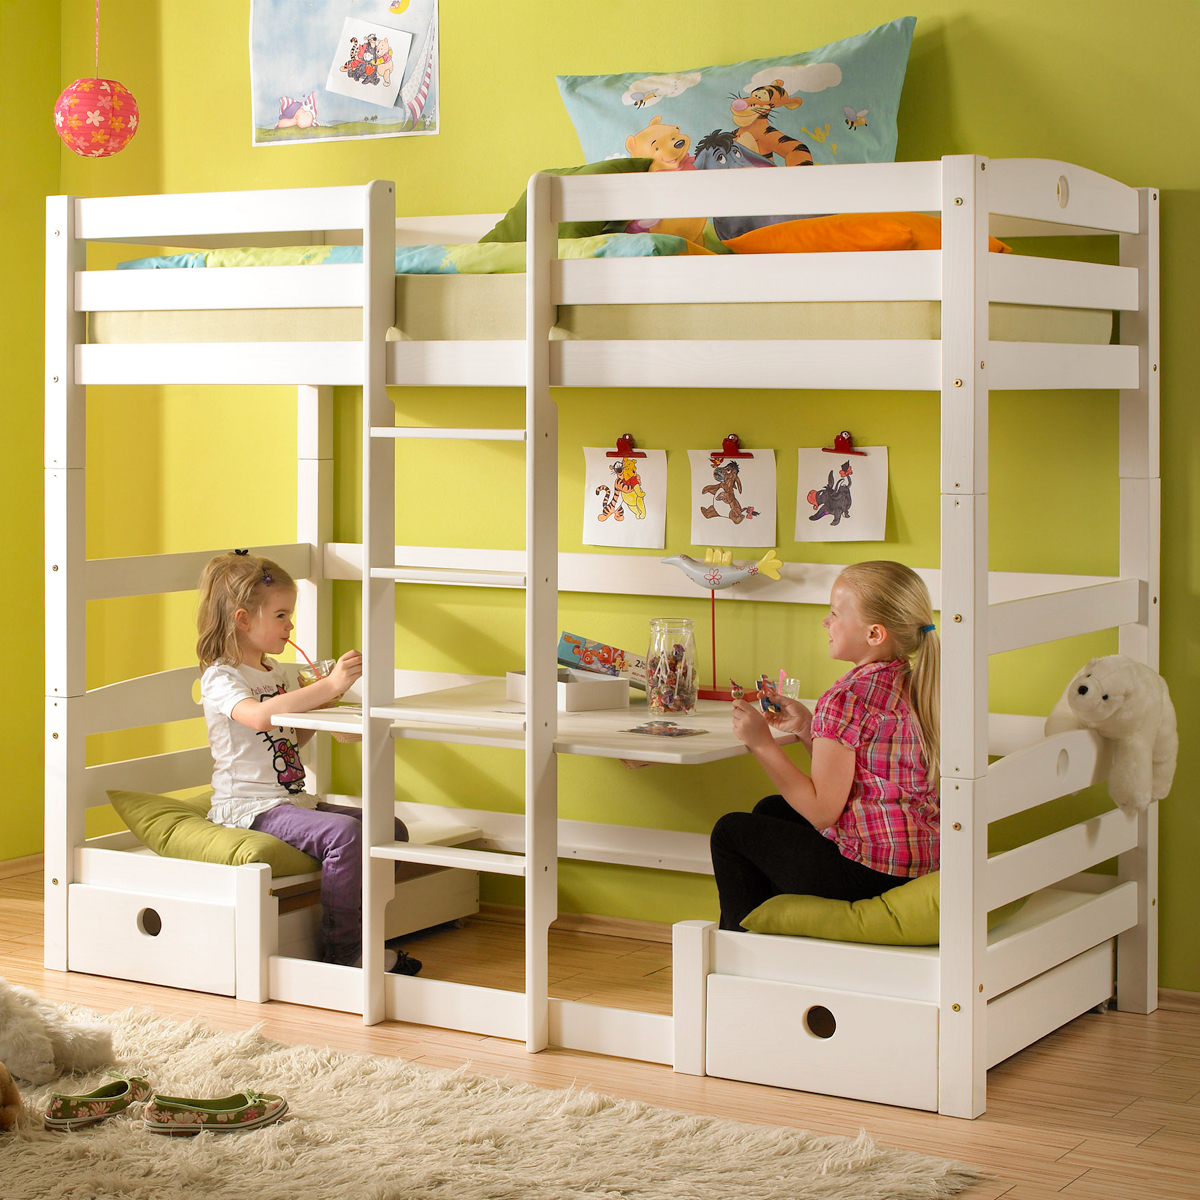 etagenbett olli hochbett kinderbett bett kiefer massiv wei wachs ebay. Black Bedroom Furniture Sets. Home Design Ideas